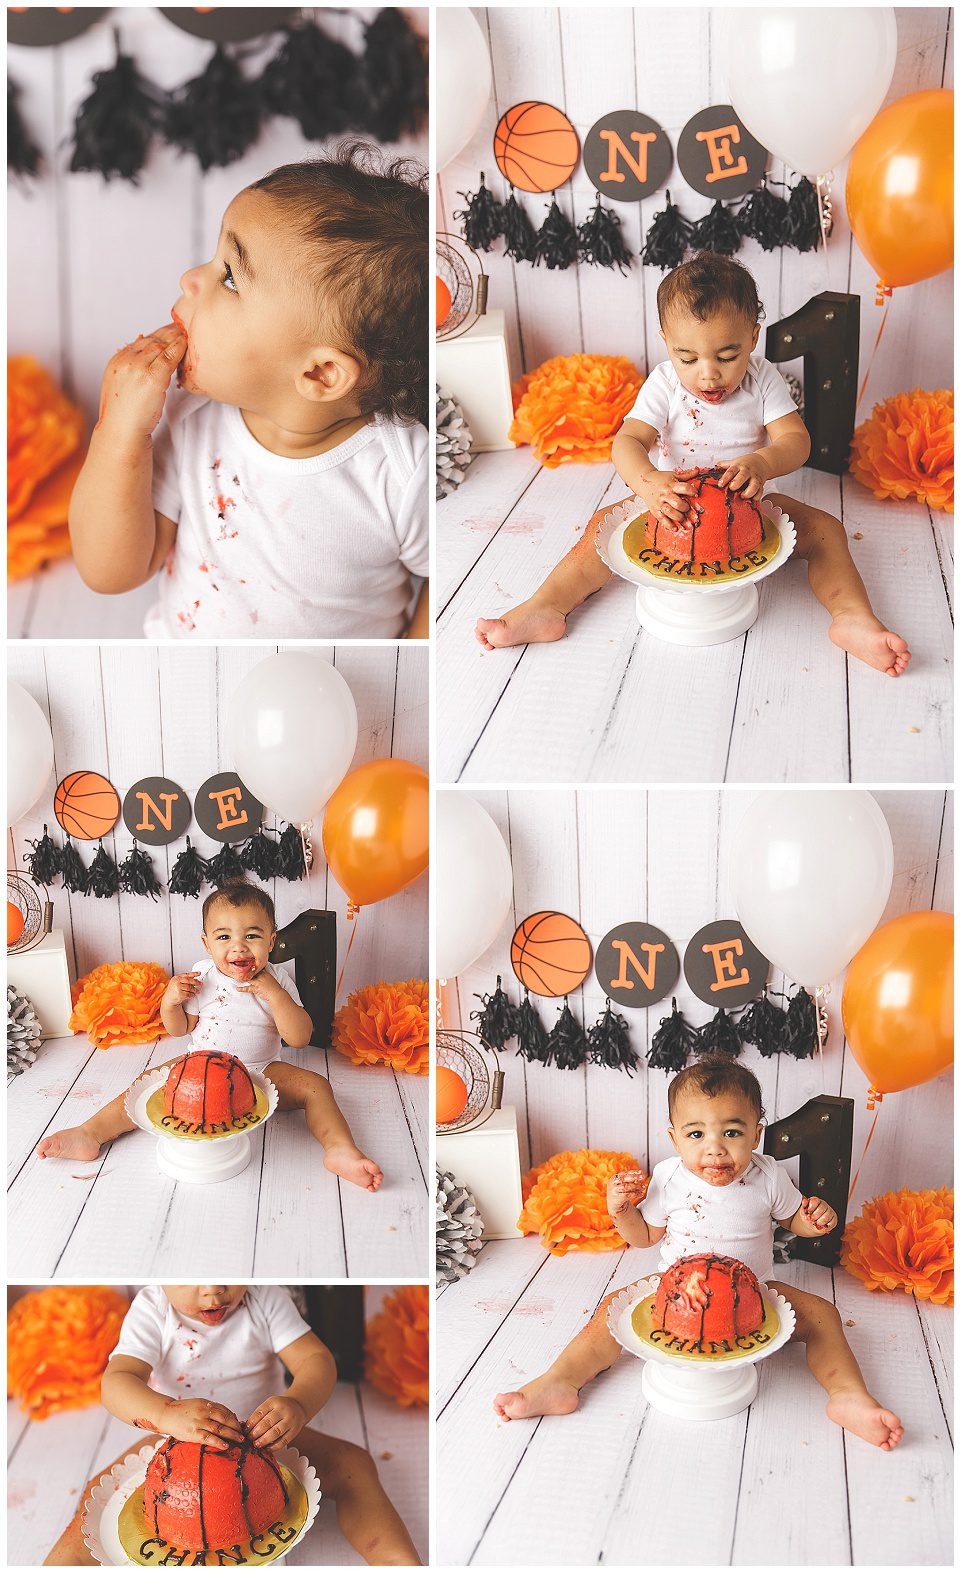 white, black and orange basketball themed cake smashe for one year old boy, wearing a white onesie